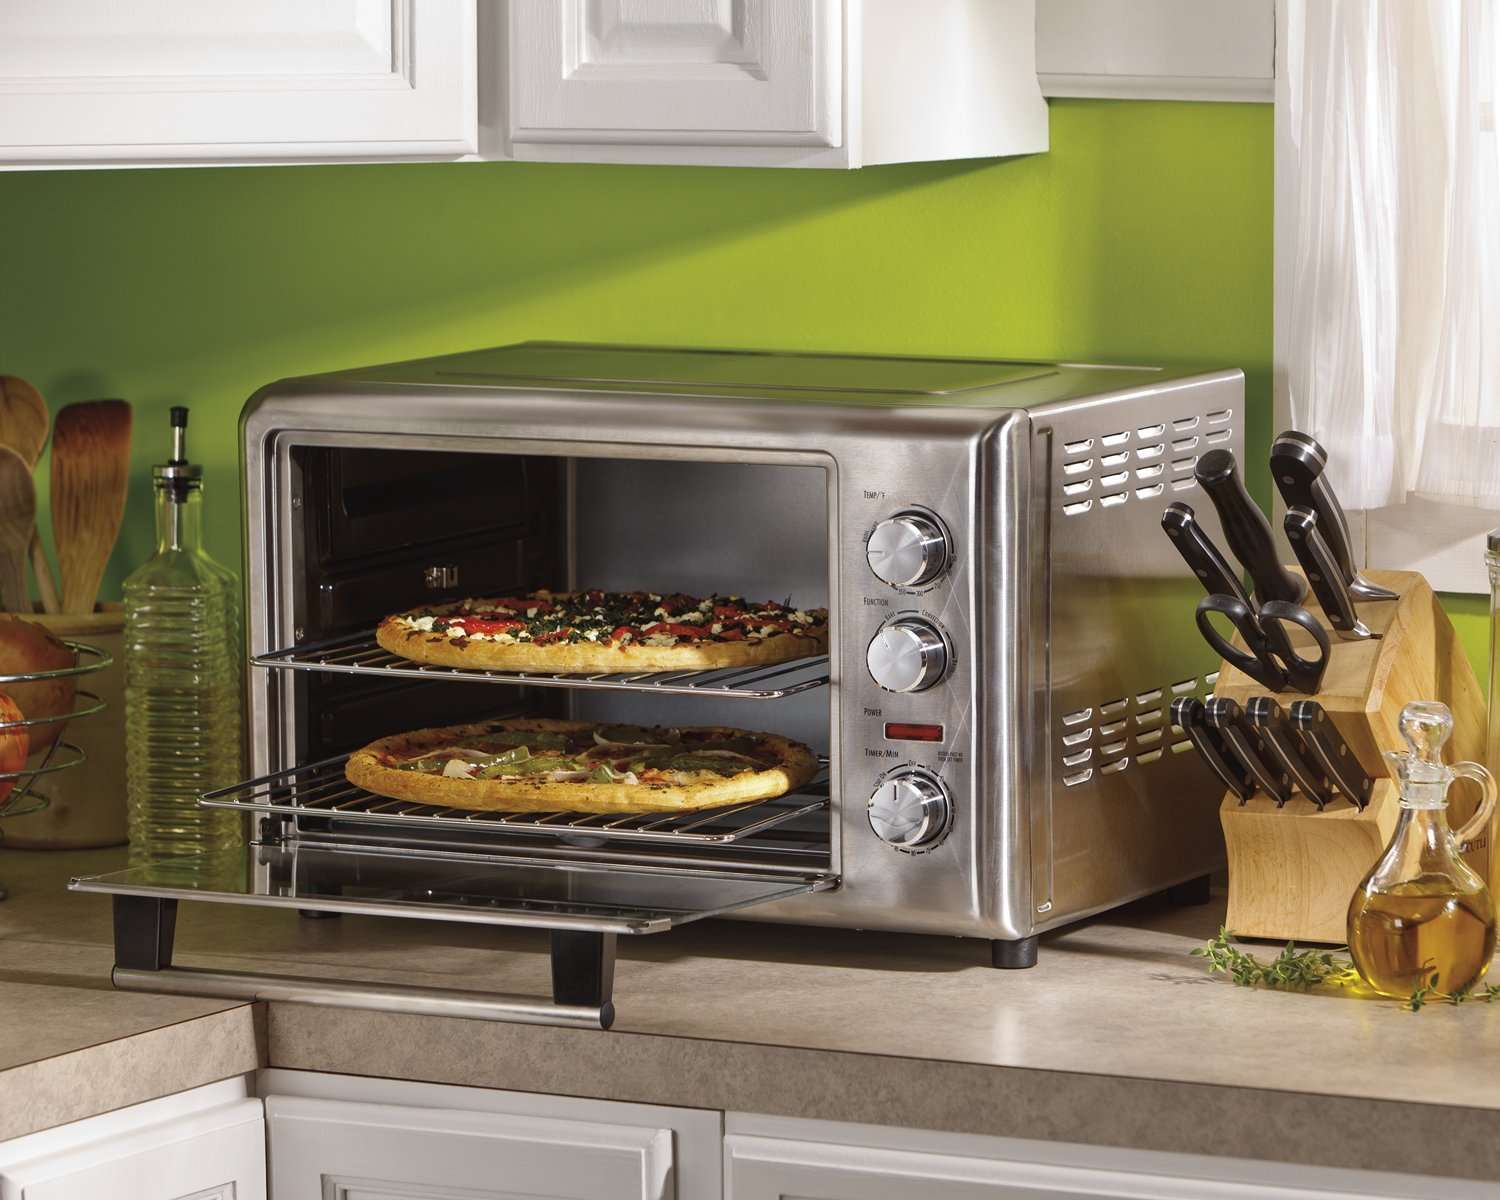 Top 10 Best Countertop Ovens 2019 Review